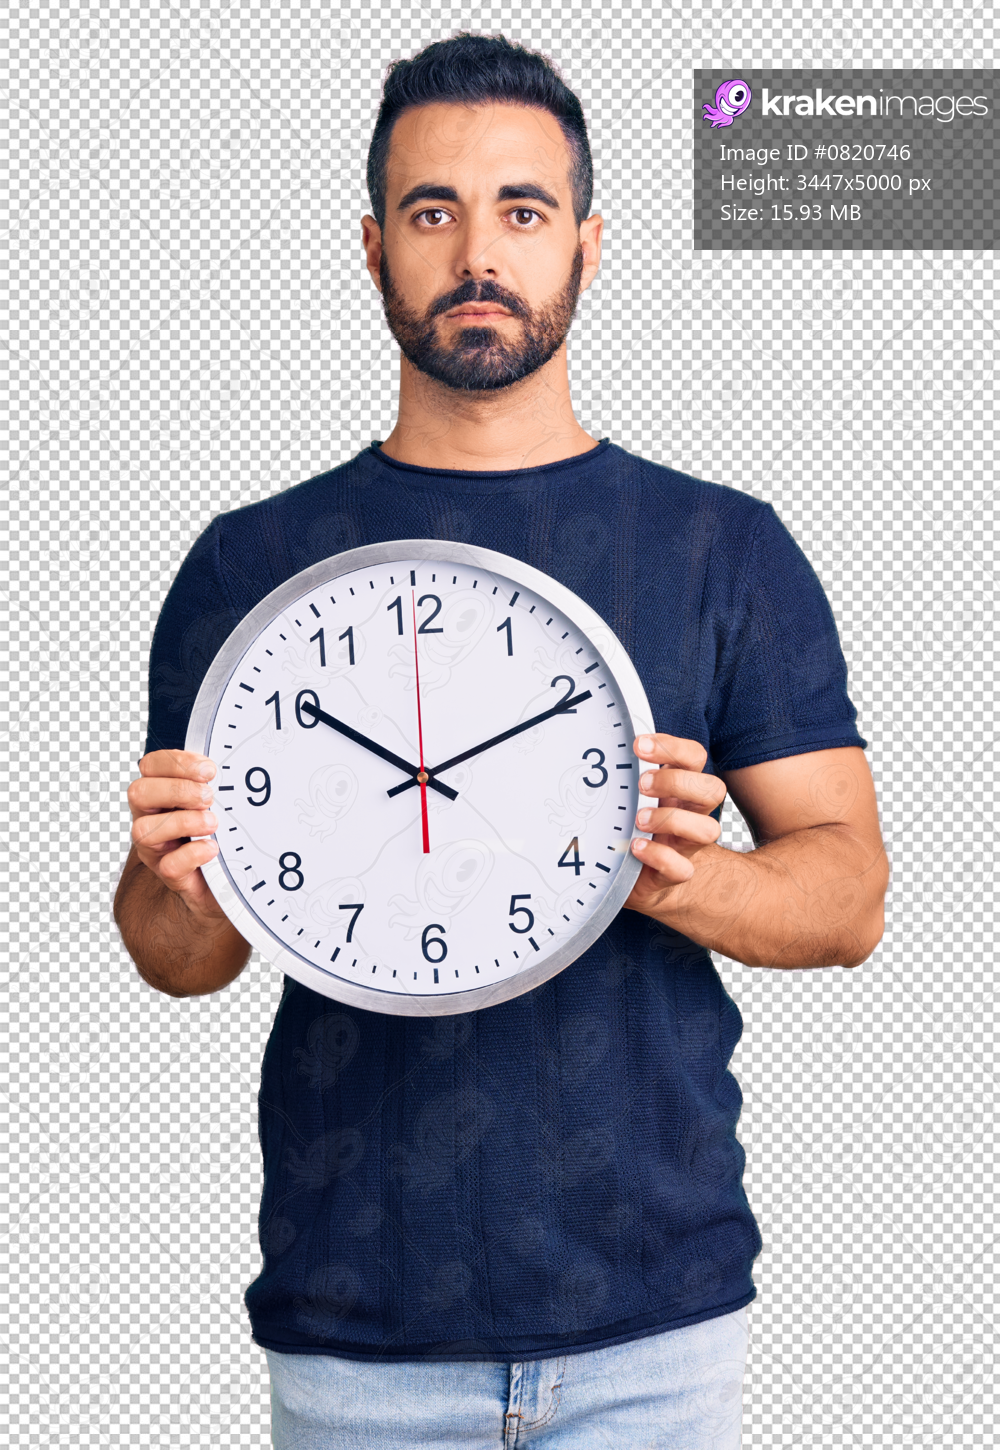 Young hispanic man holding big clock thinking attitude and sober expression looking self confident